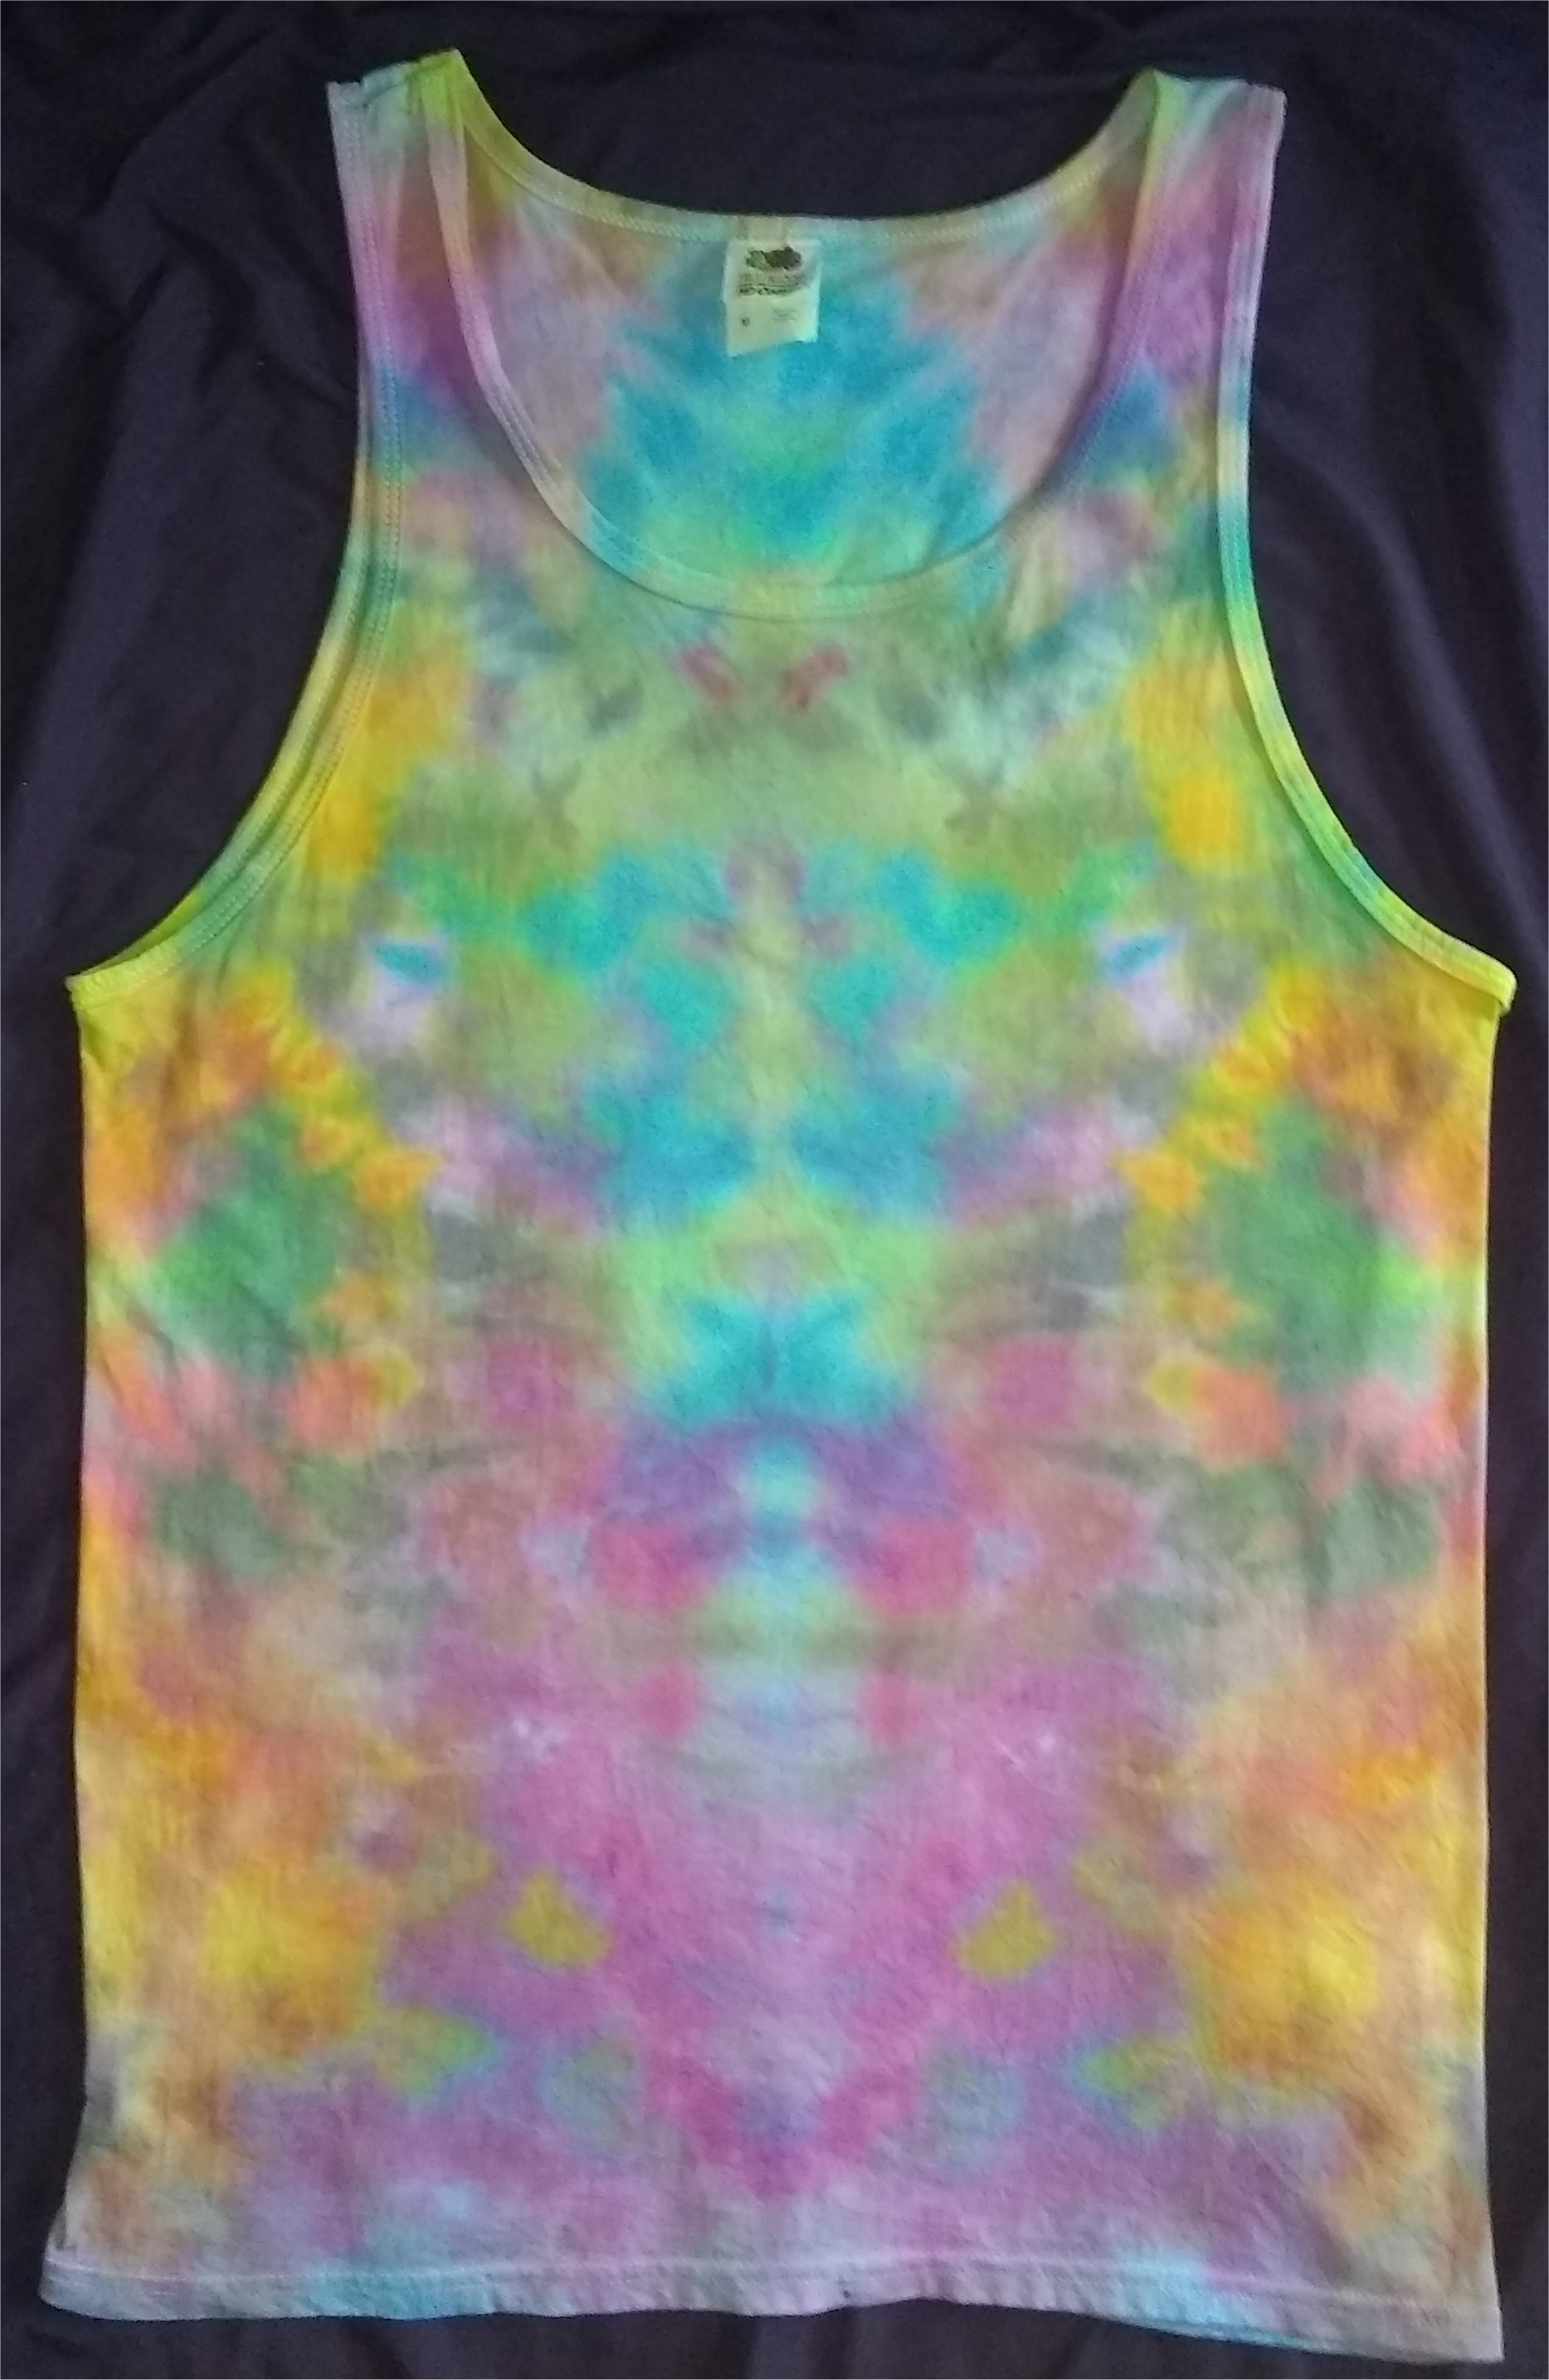 Eternal Realm Ice Dye Tank Top Size M